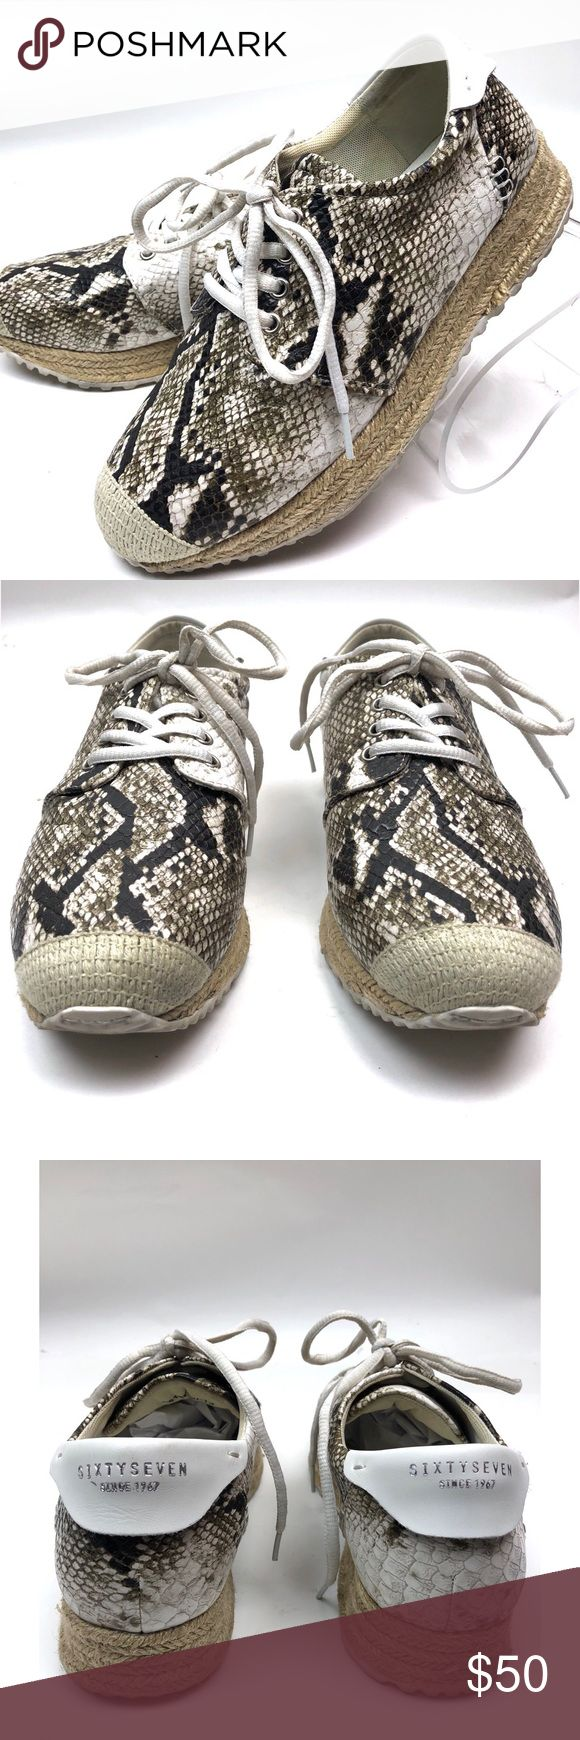 "{SixtySeven} Python Print Espadrille Sneakers *Preowned *Good Condition normal wear *Size 8 *Lace up closure  *approx 2"" heel Sixtyseven Shoes Sneakers"